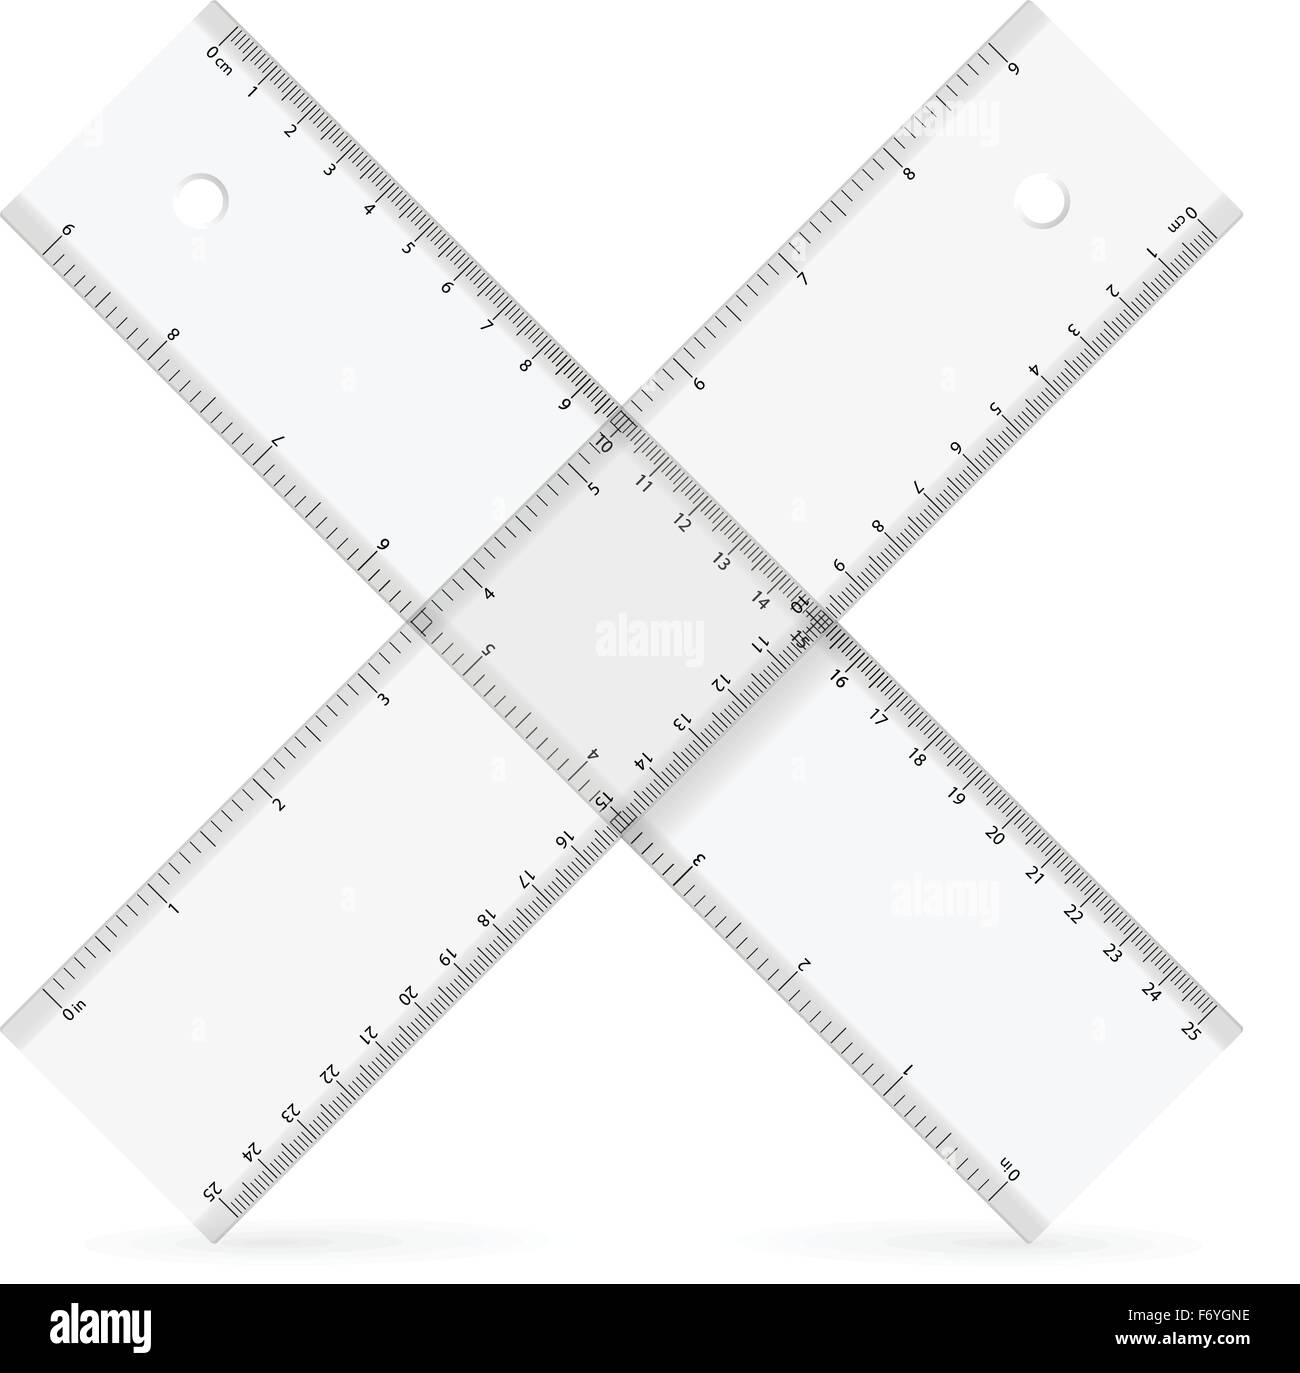 Rulers icon on a white background. Vector illustration. - Stock Vector